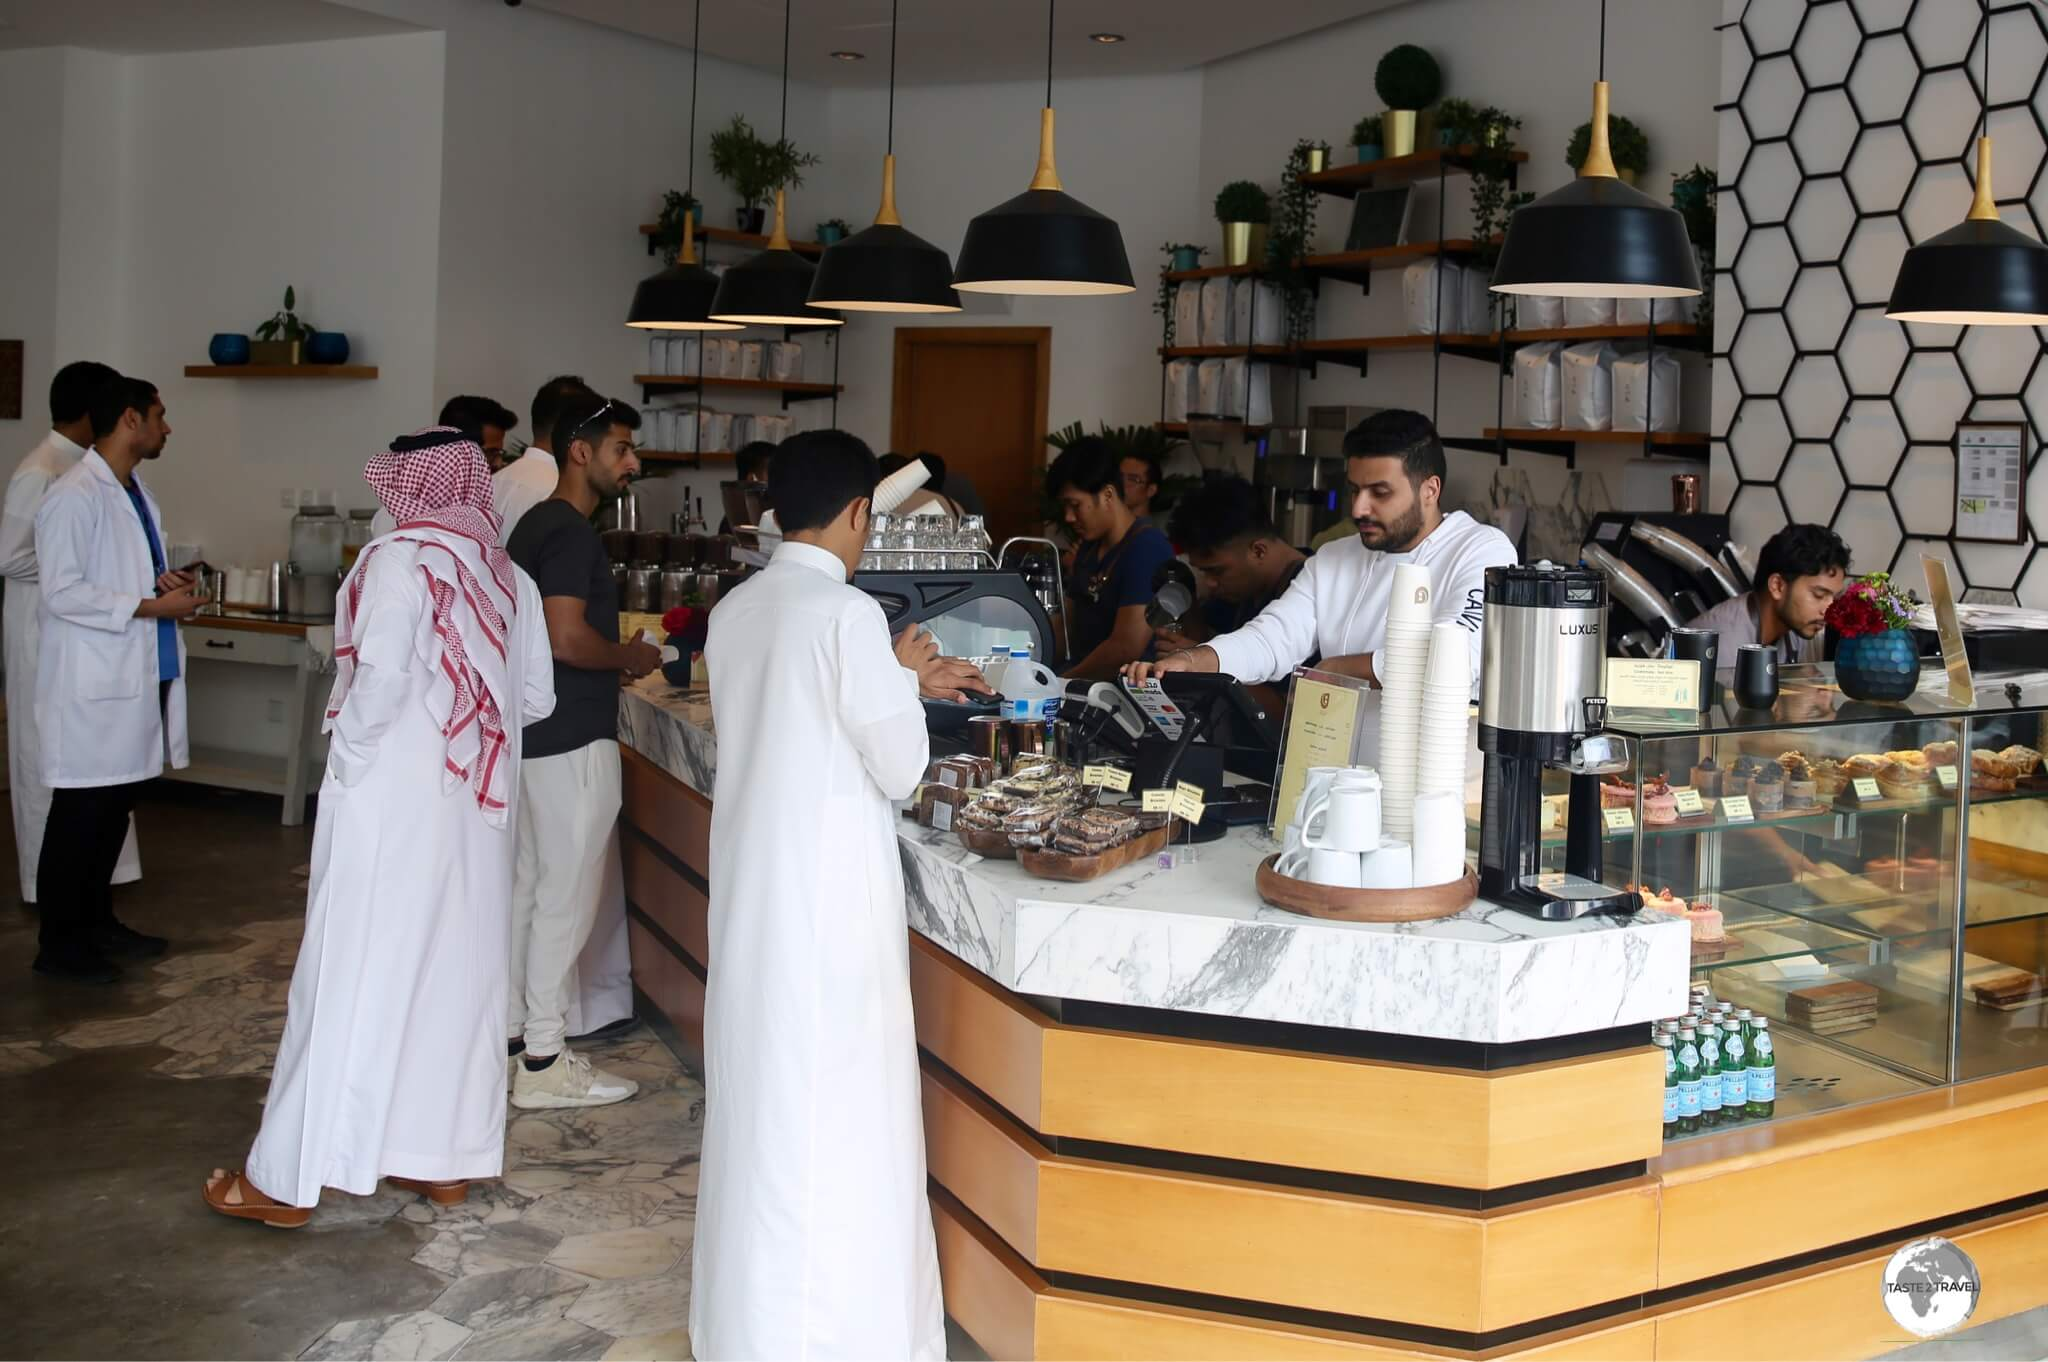 Qaf Coffee Roasters in Al Khobar serves the best coffee in town.